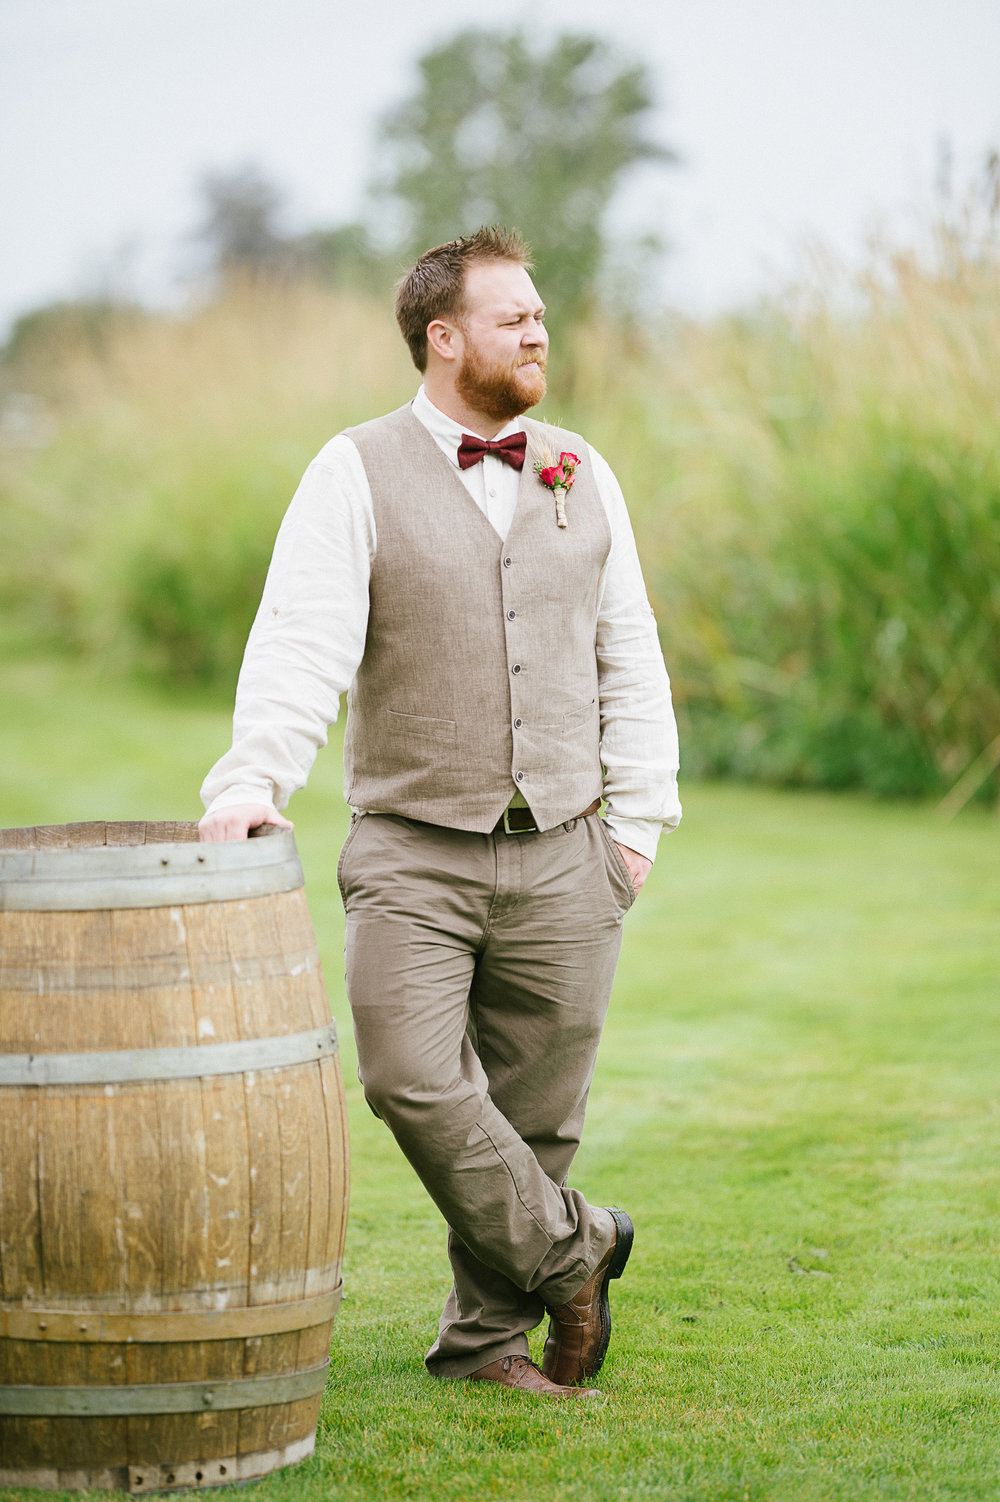 Swan Trail Farm Wedding_Sarah Schurman + Brian Skadan_Snohomish Wedding_Kelsey Lane Photography-5623.jpg